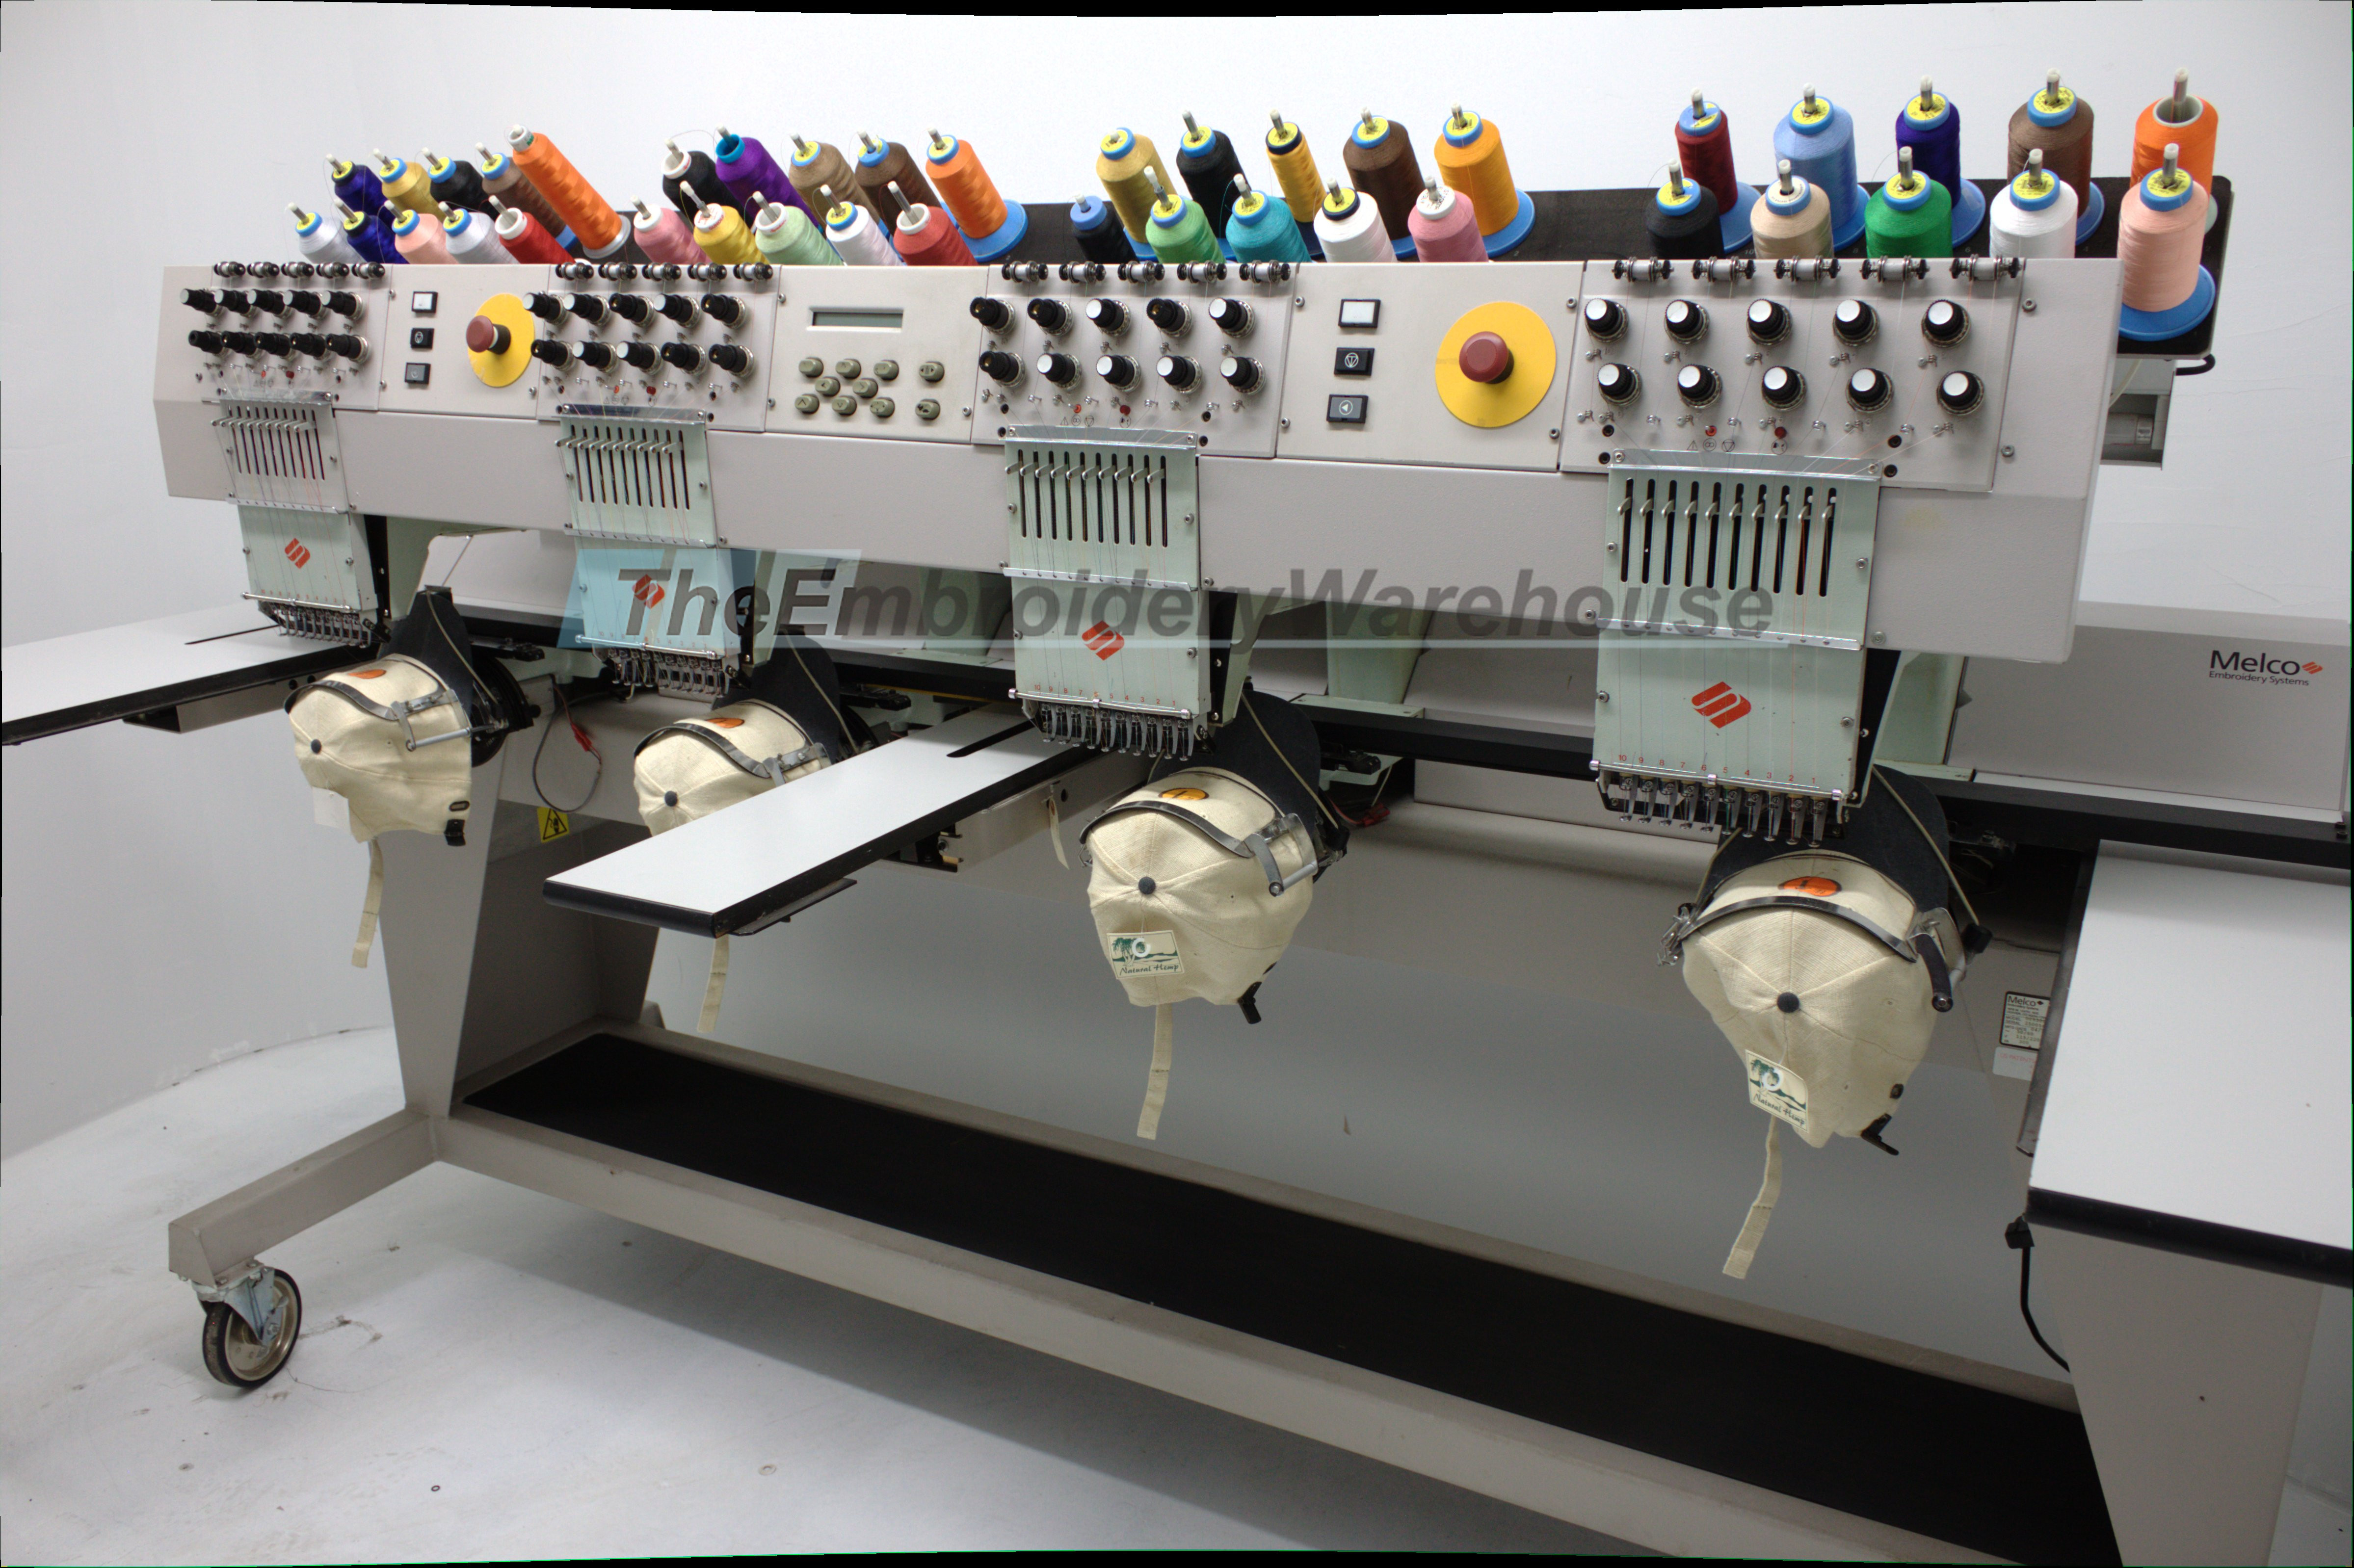 ID#1318 - Melco EMC 10/4T Commercial Embroidery Machine.  Year  Heads: 4 Needles: 10 - www.TheEmbroideryWarehouse.com